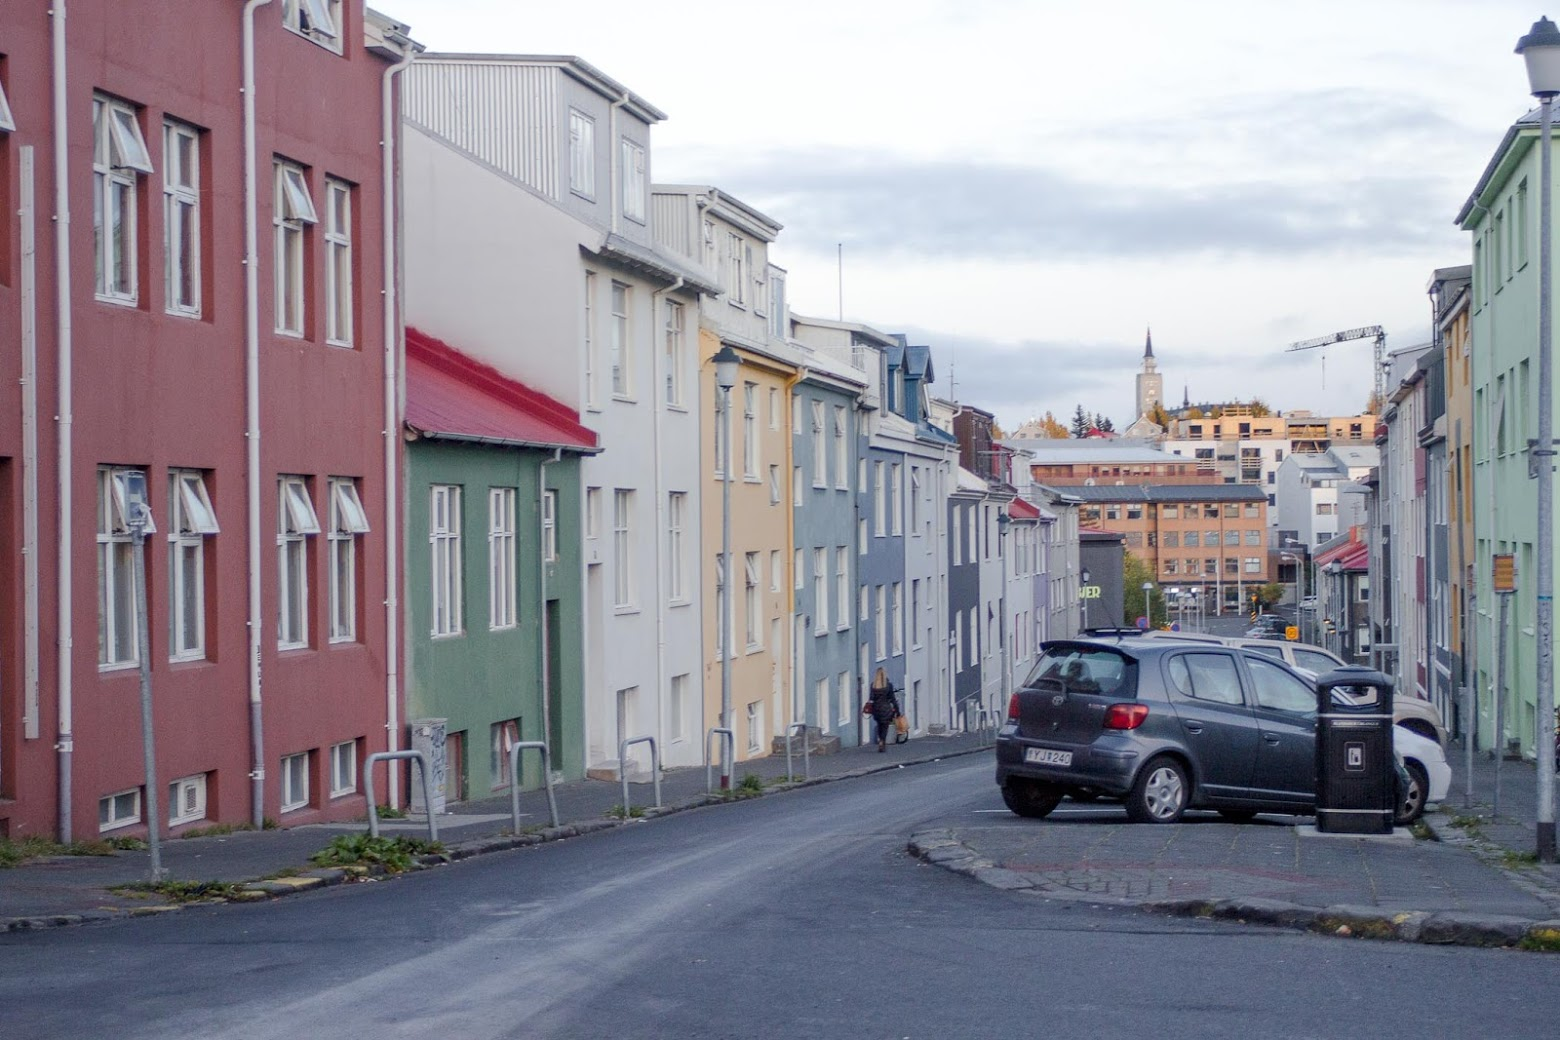 Down town in the Heart of Reykjavik - Reykjavik, IcelandType: Entire StudioBeds: 1 double (sleeps 2)Cost: $